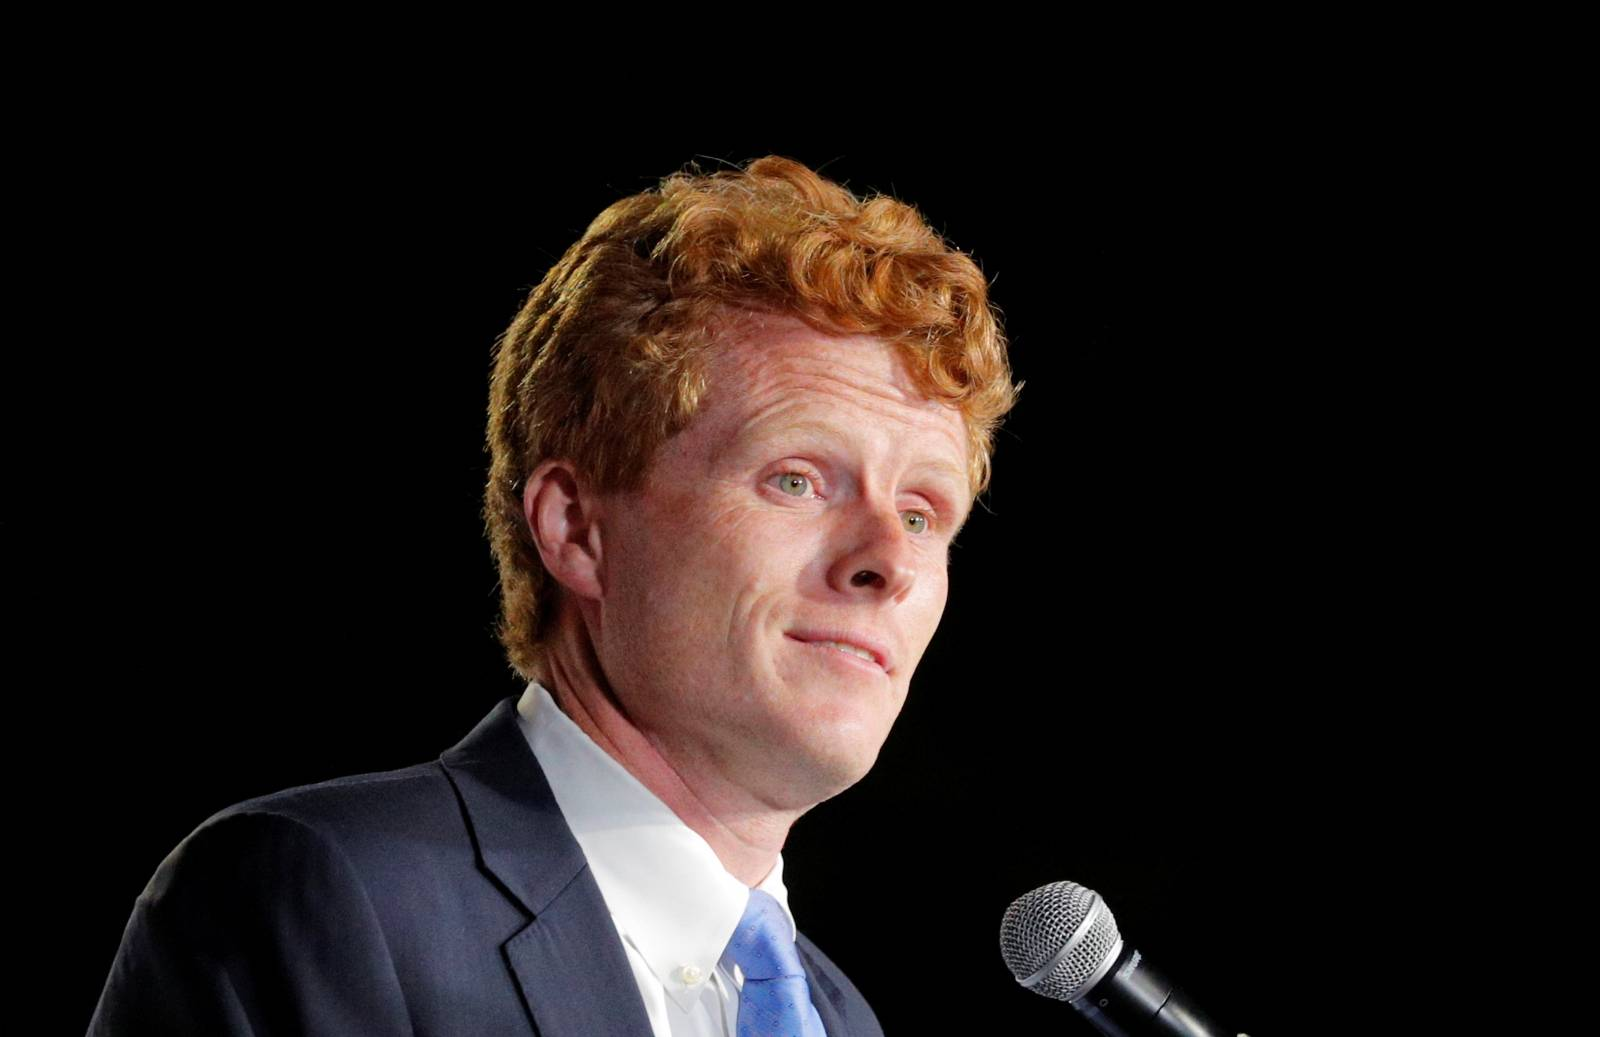 U.S. Representative Joe Kennedy III holds a primary election rally in Watertown